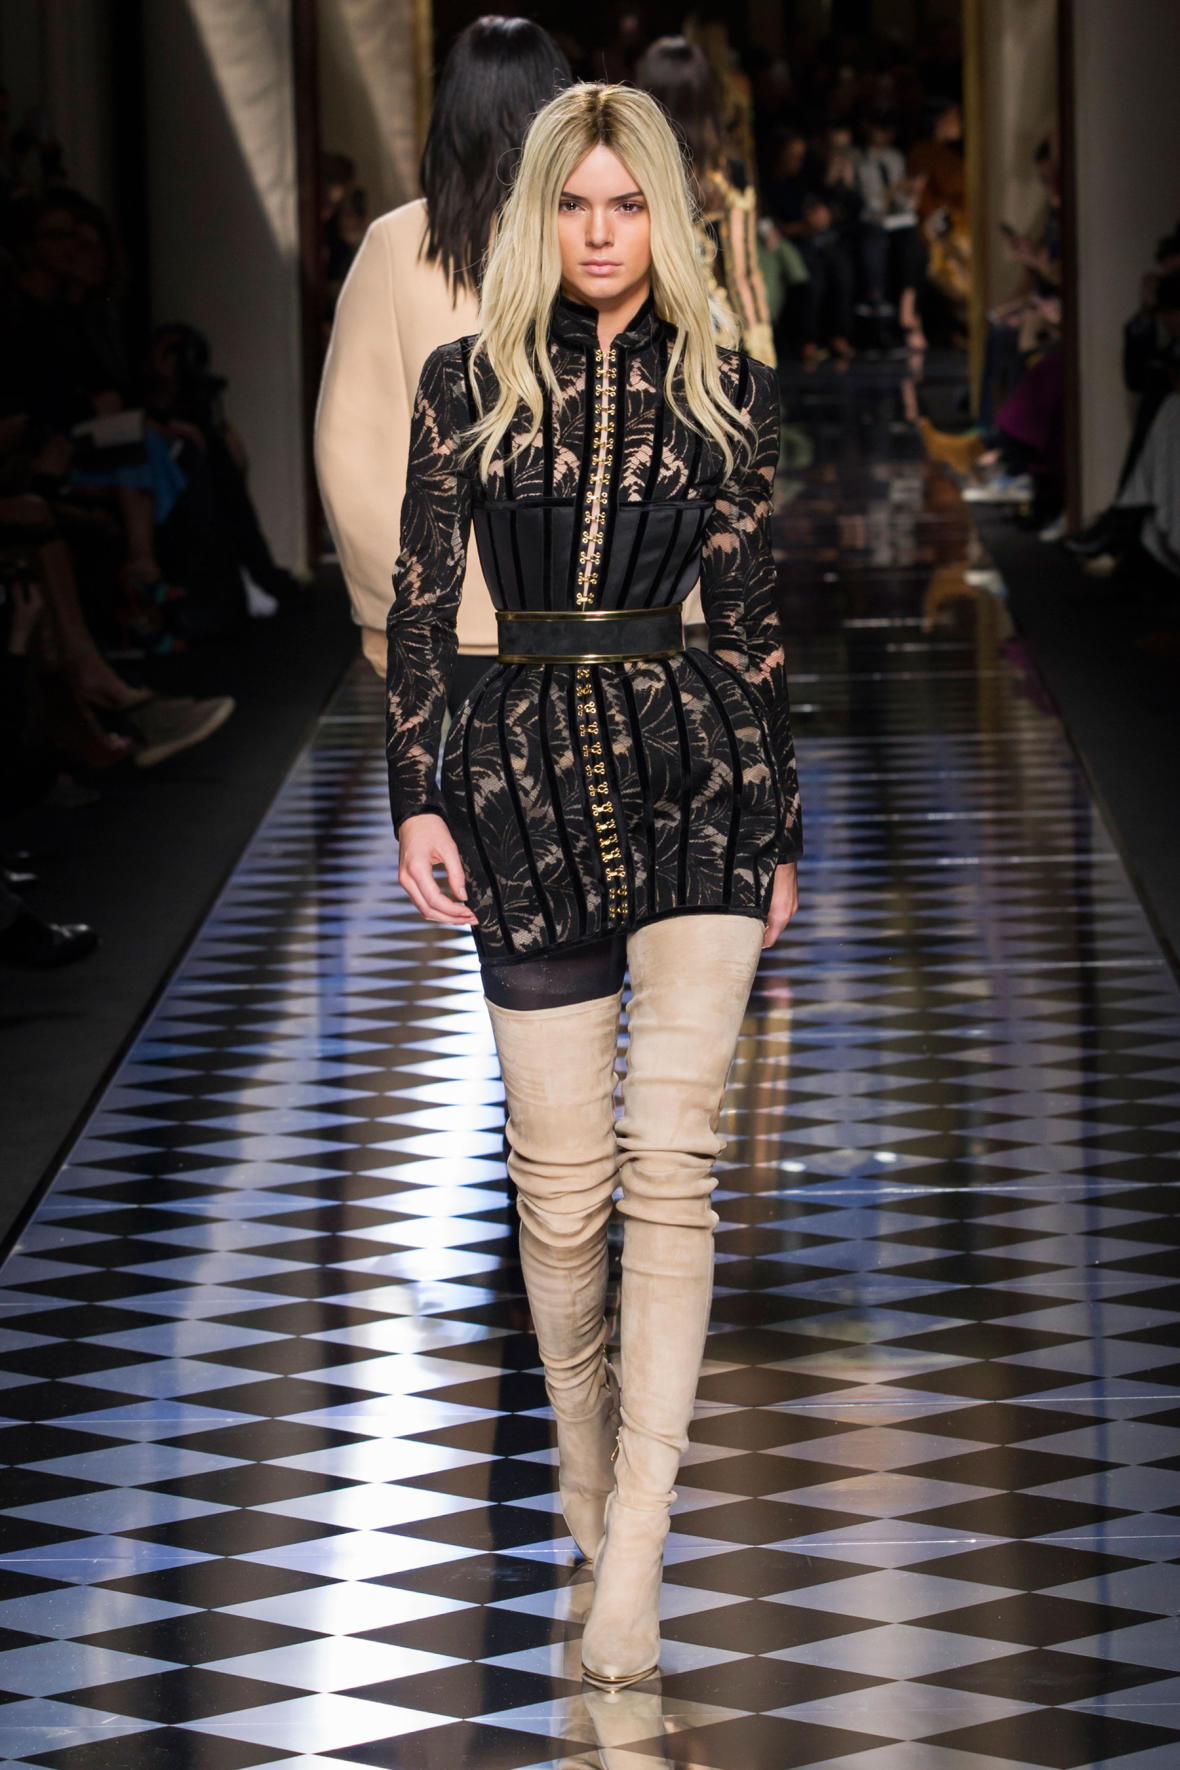 Innovative She Wears A Futuristic Metallic Tunic And Leather Thighhigh Boots With Lucite Heels Balmain Opted For An Experimental Appro